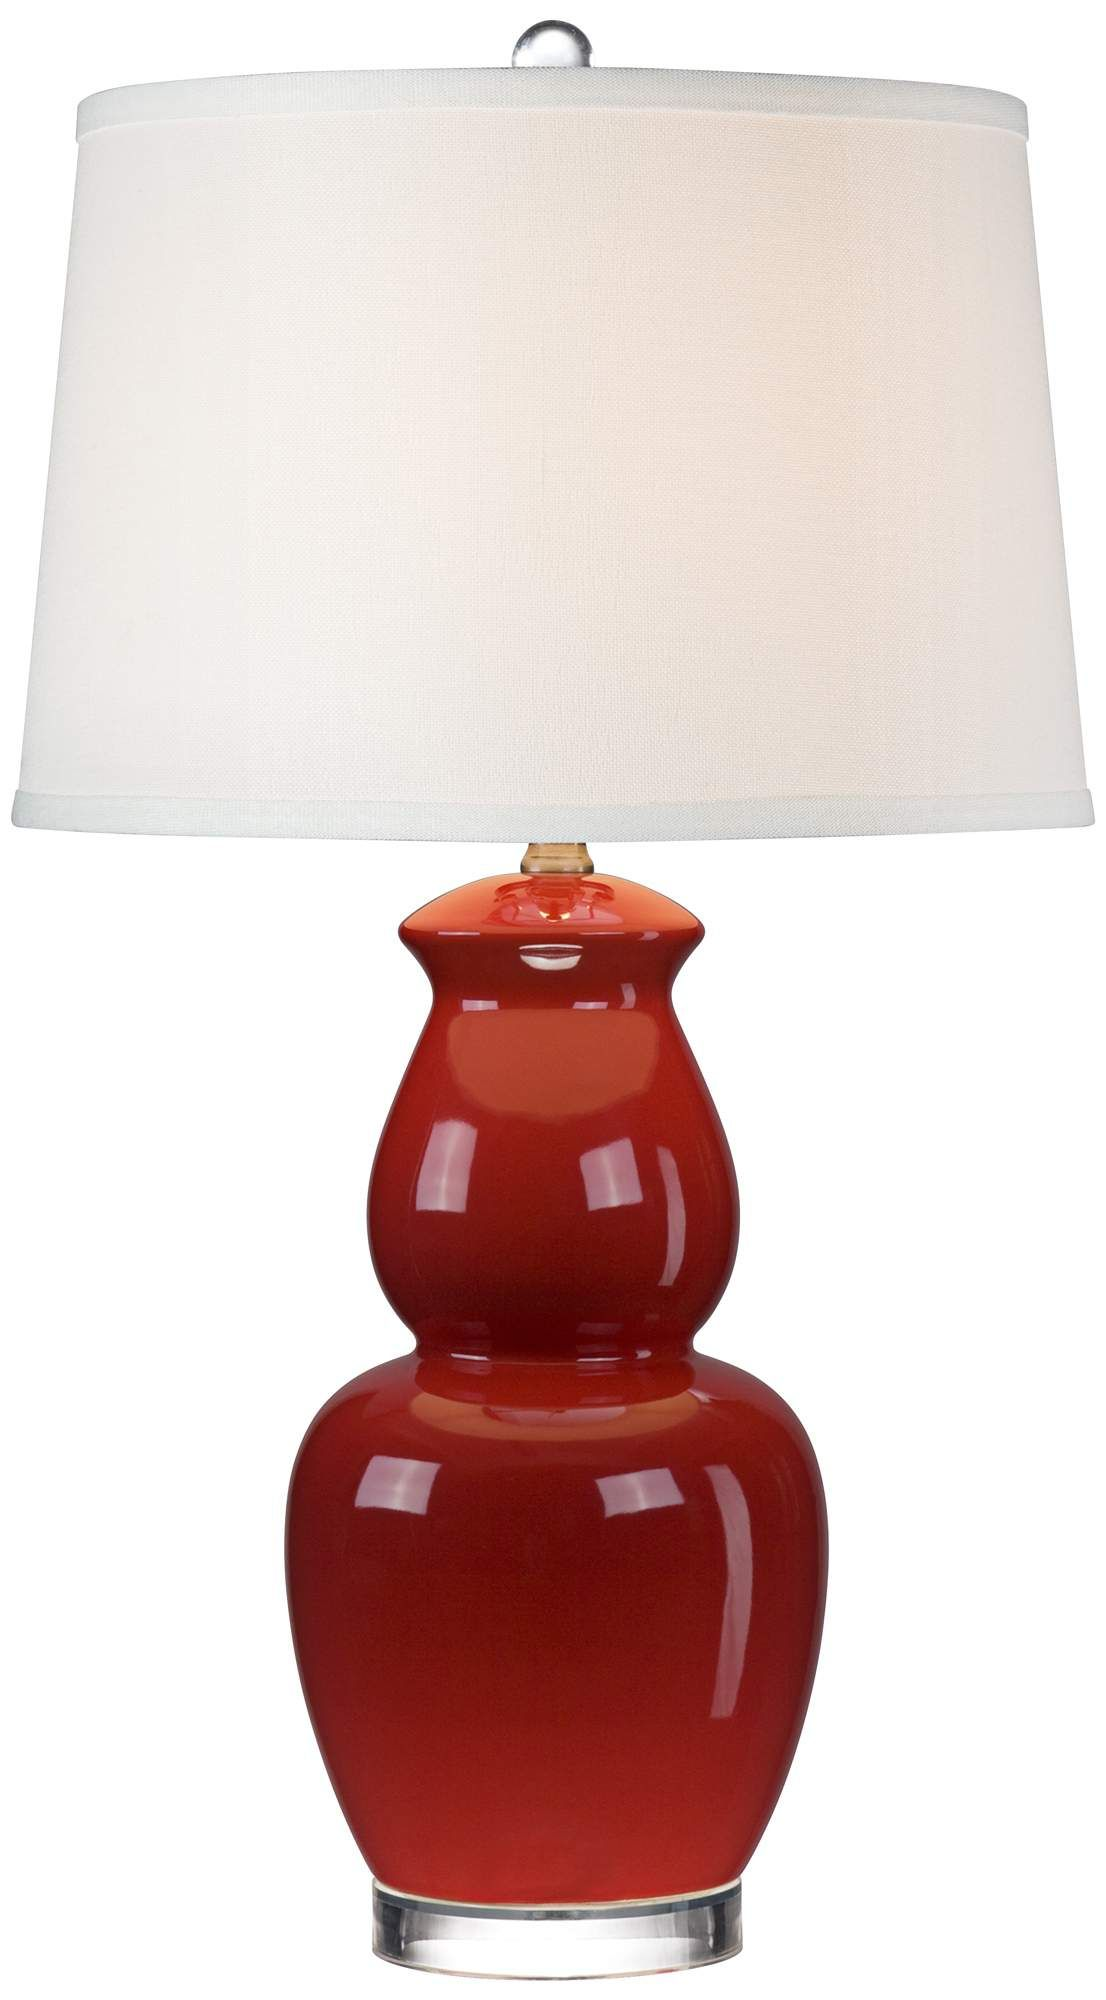 Red Double Gourd Ceramic Table Lamp 55downingstreet Com Light